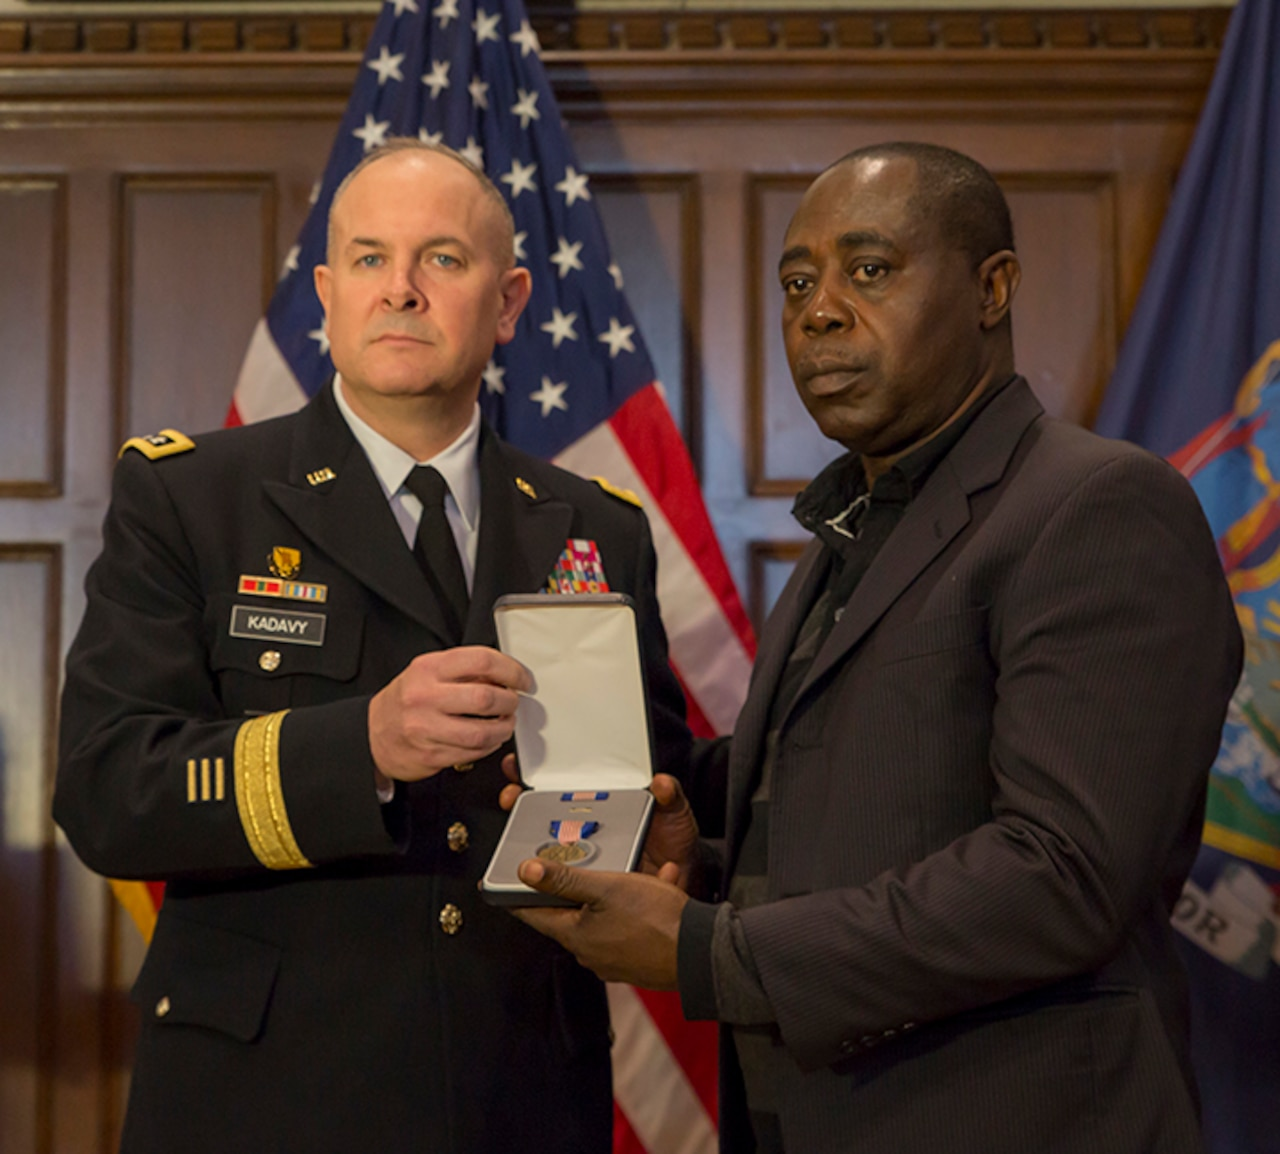 Soldier honored for fire rescues